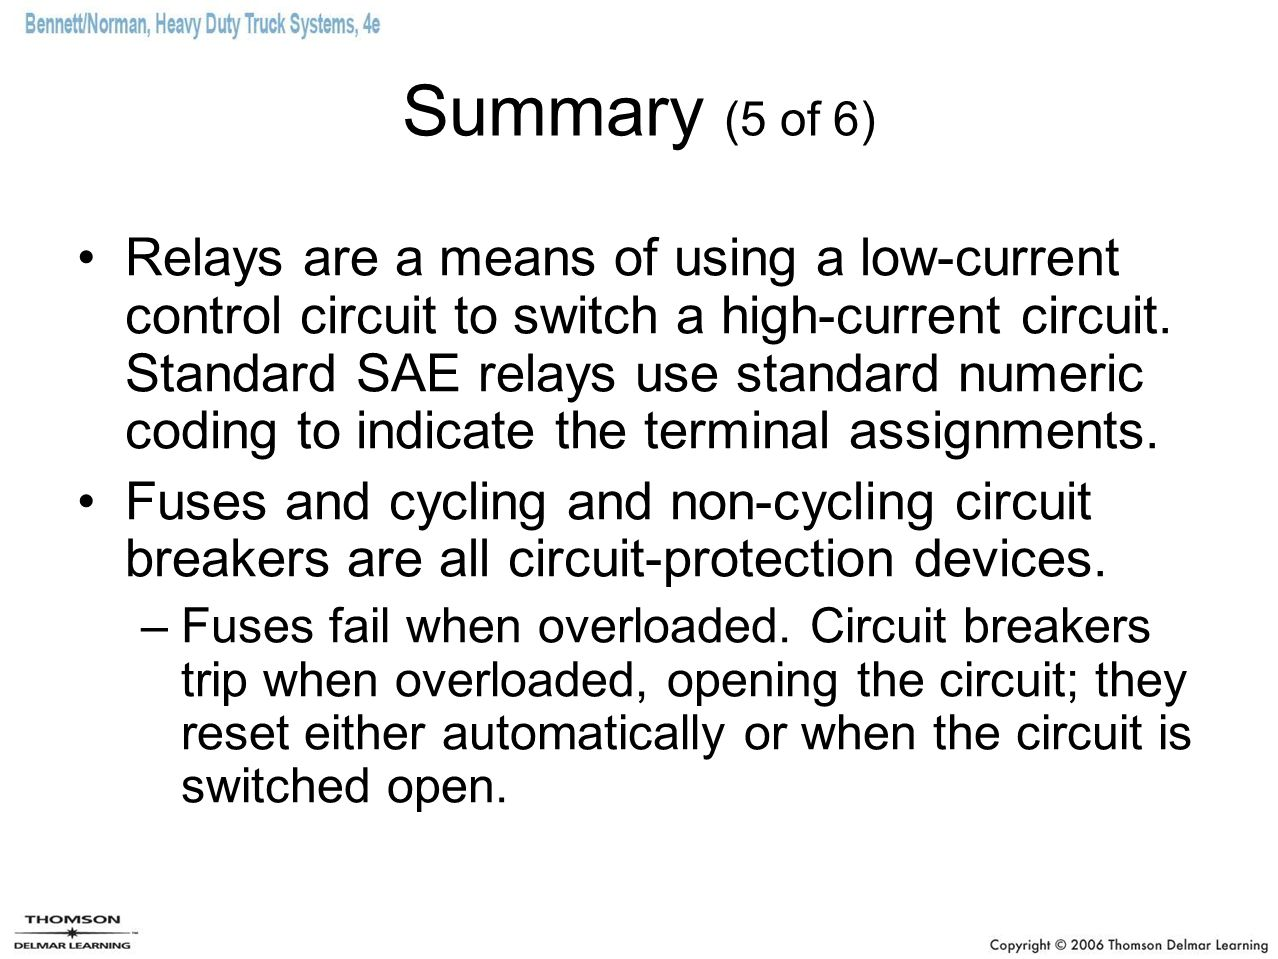 Summary (5 of 6) Relays are a means of using a low-current control circuit to switch a high-current circuit. Standard SAE relays use standard numeric